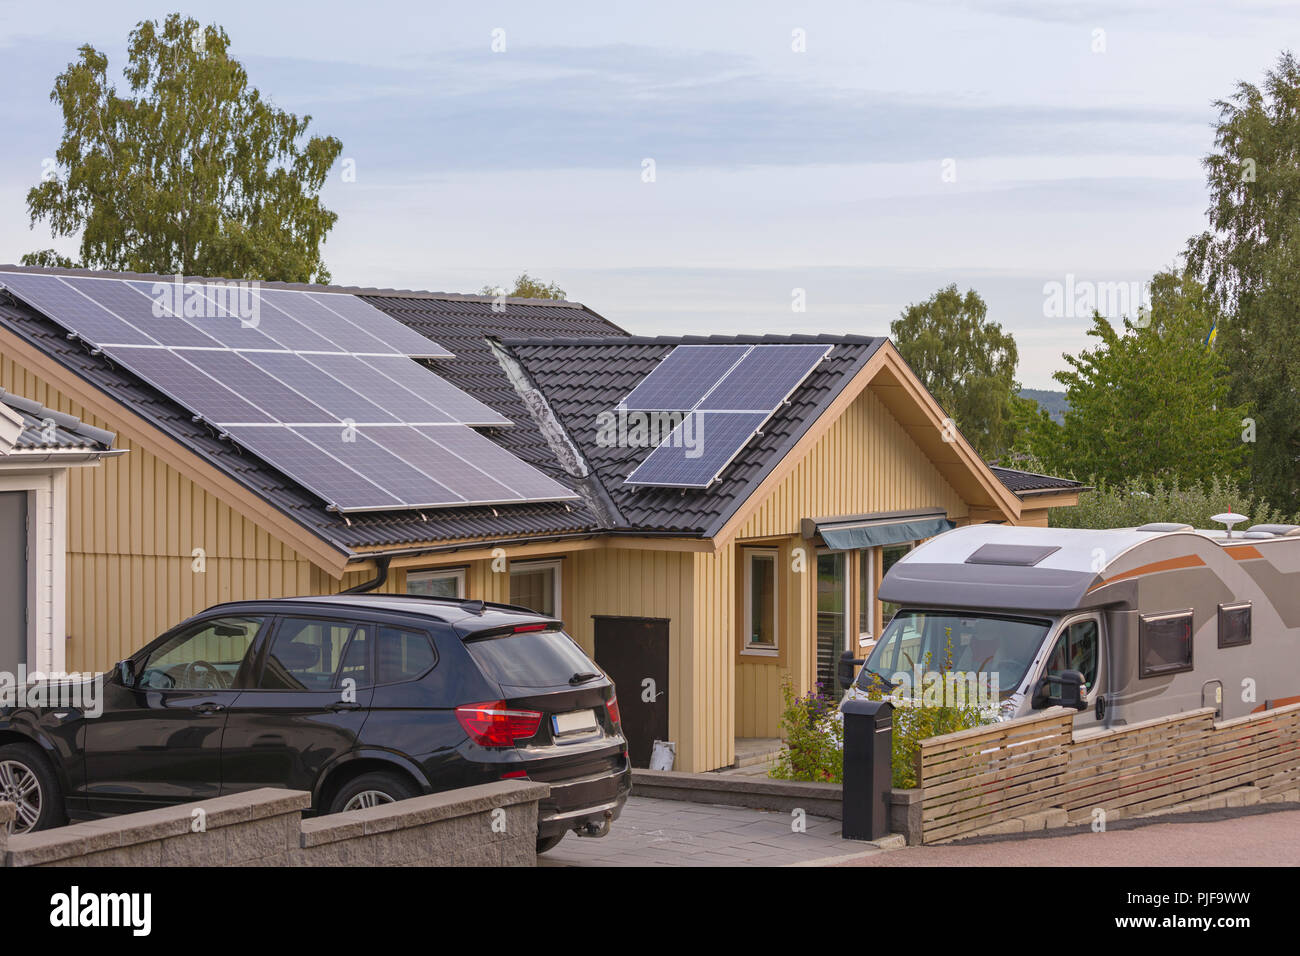 Solar panels on top of roof tiles on typical swedish or scandinavian wood panel house - Stock Image